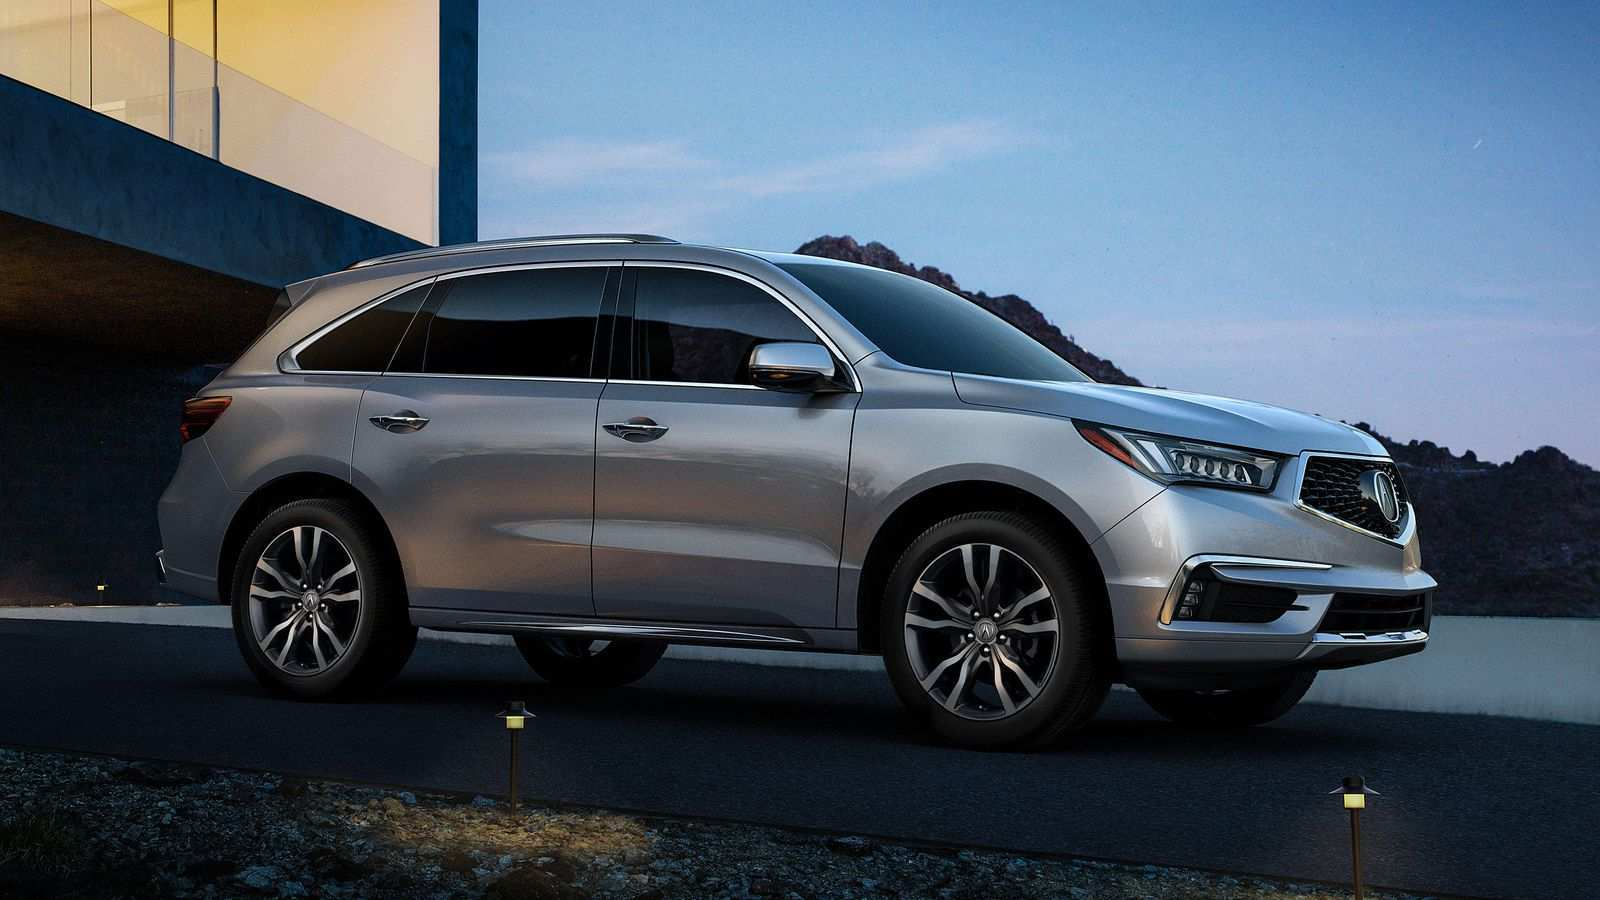 30 Best Review 2019 Acura Suv Reviews for 2019 Acura Suv